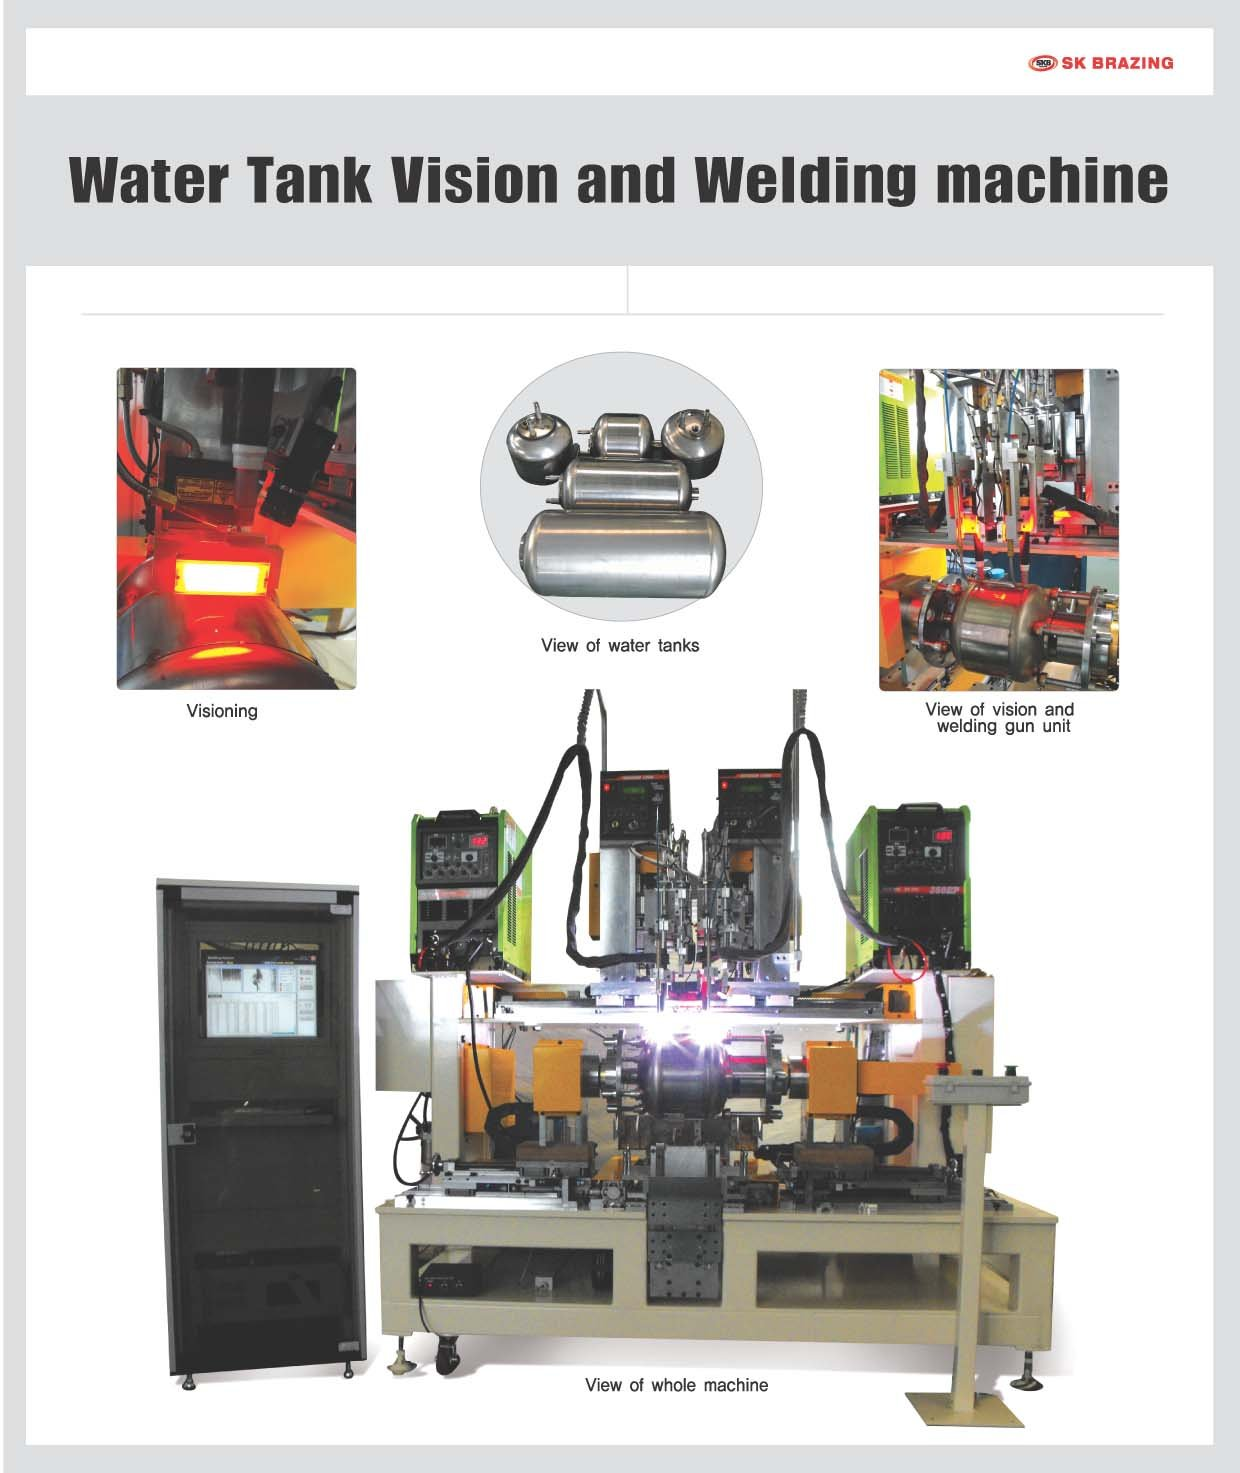 Water tank vision and welding machine